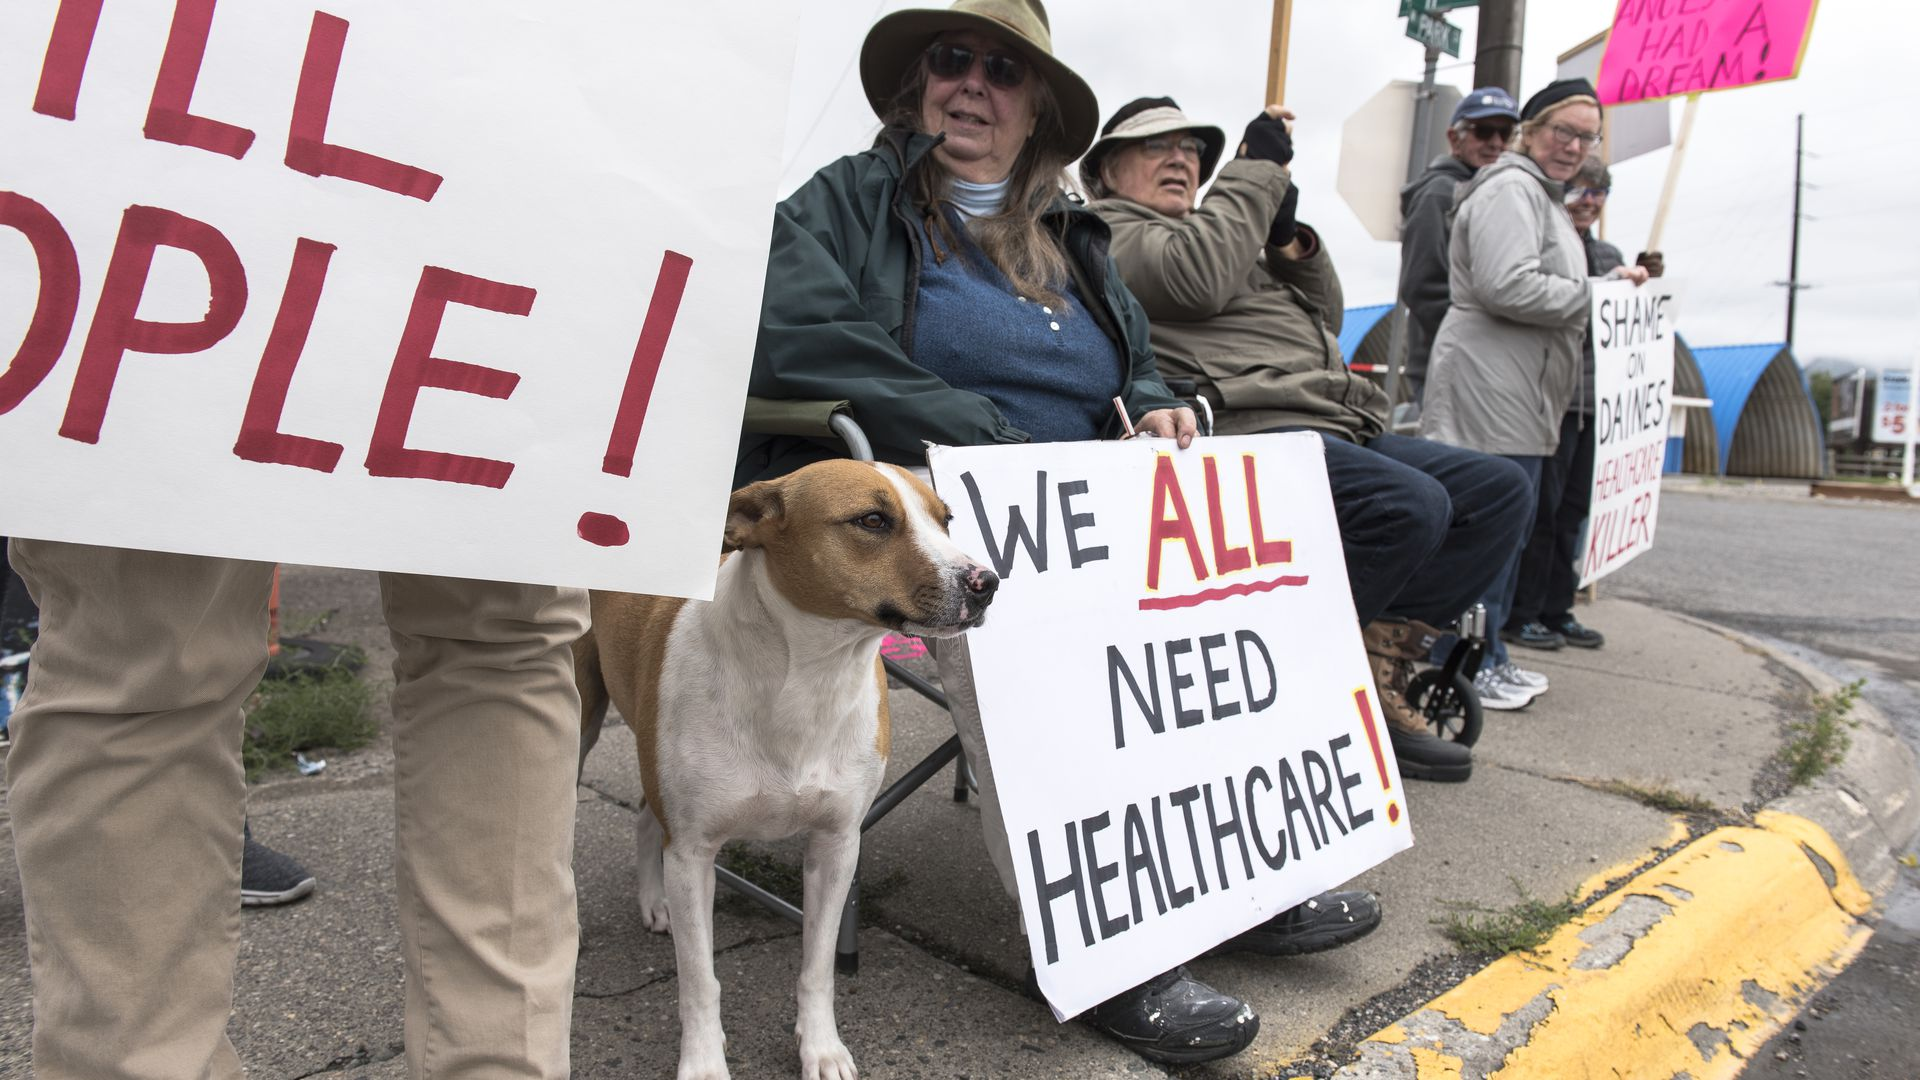 Protesters hold a small peaceful demonstration in support of health care